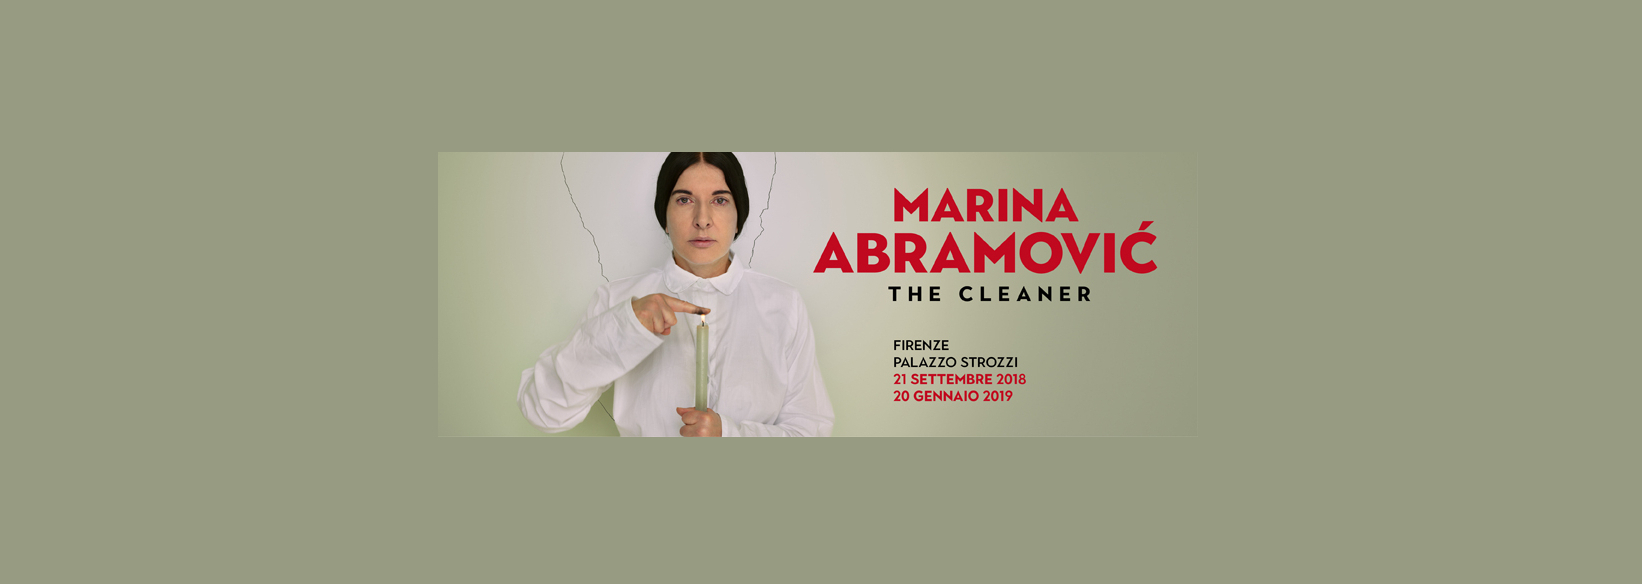 Exhibition Marina Abramović in Florence